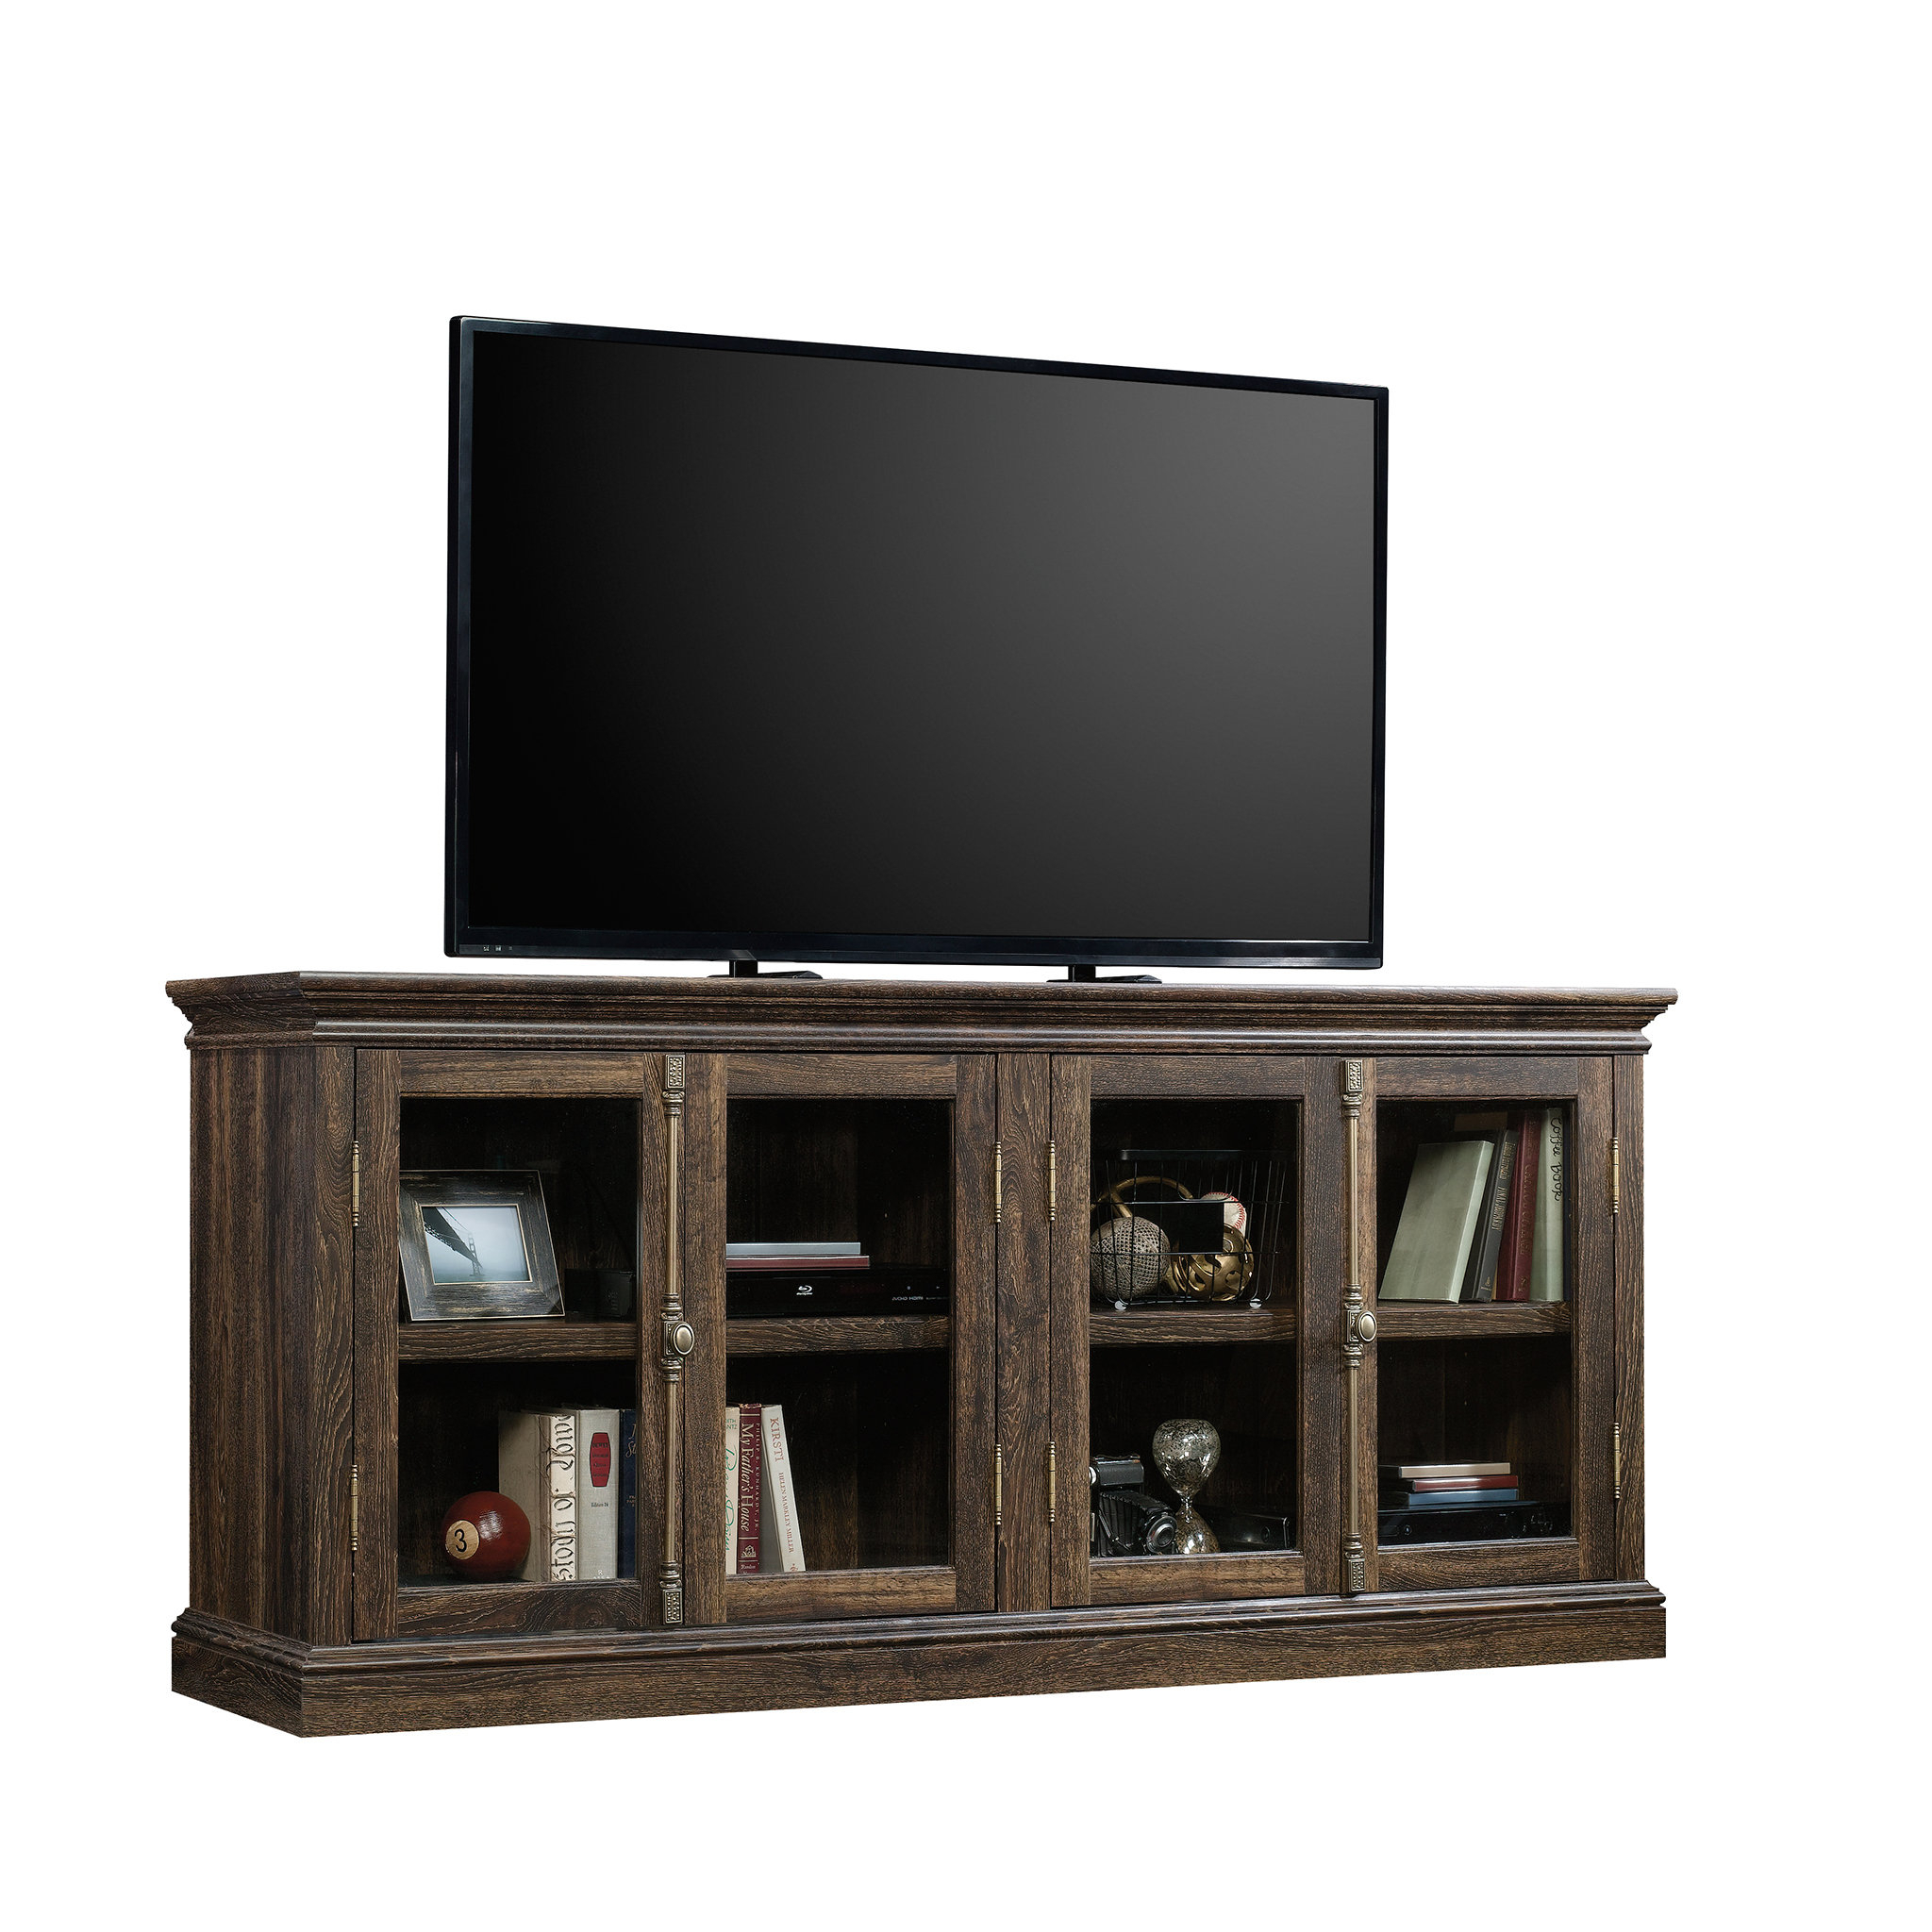 70 Inch Tv Stands | Joss & Main Within Annabelle Black 70 Inch Tv Stands (Photo 16 of 30)